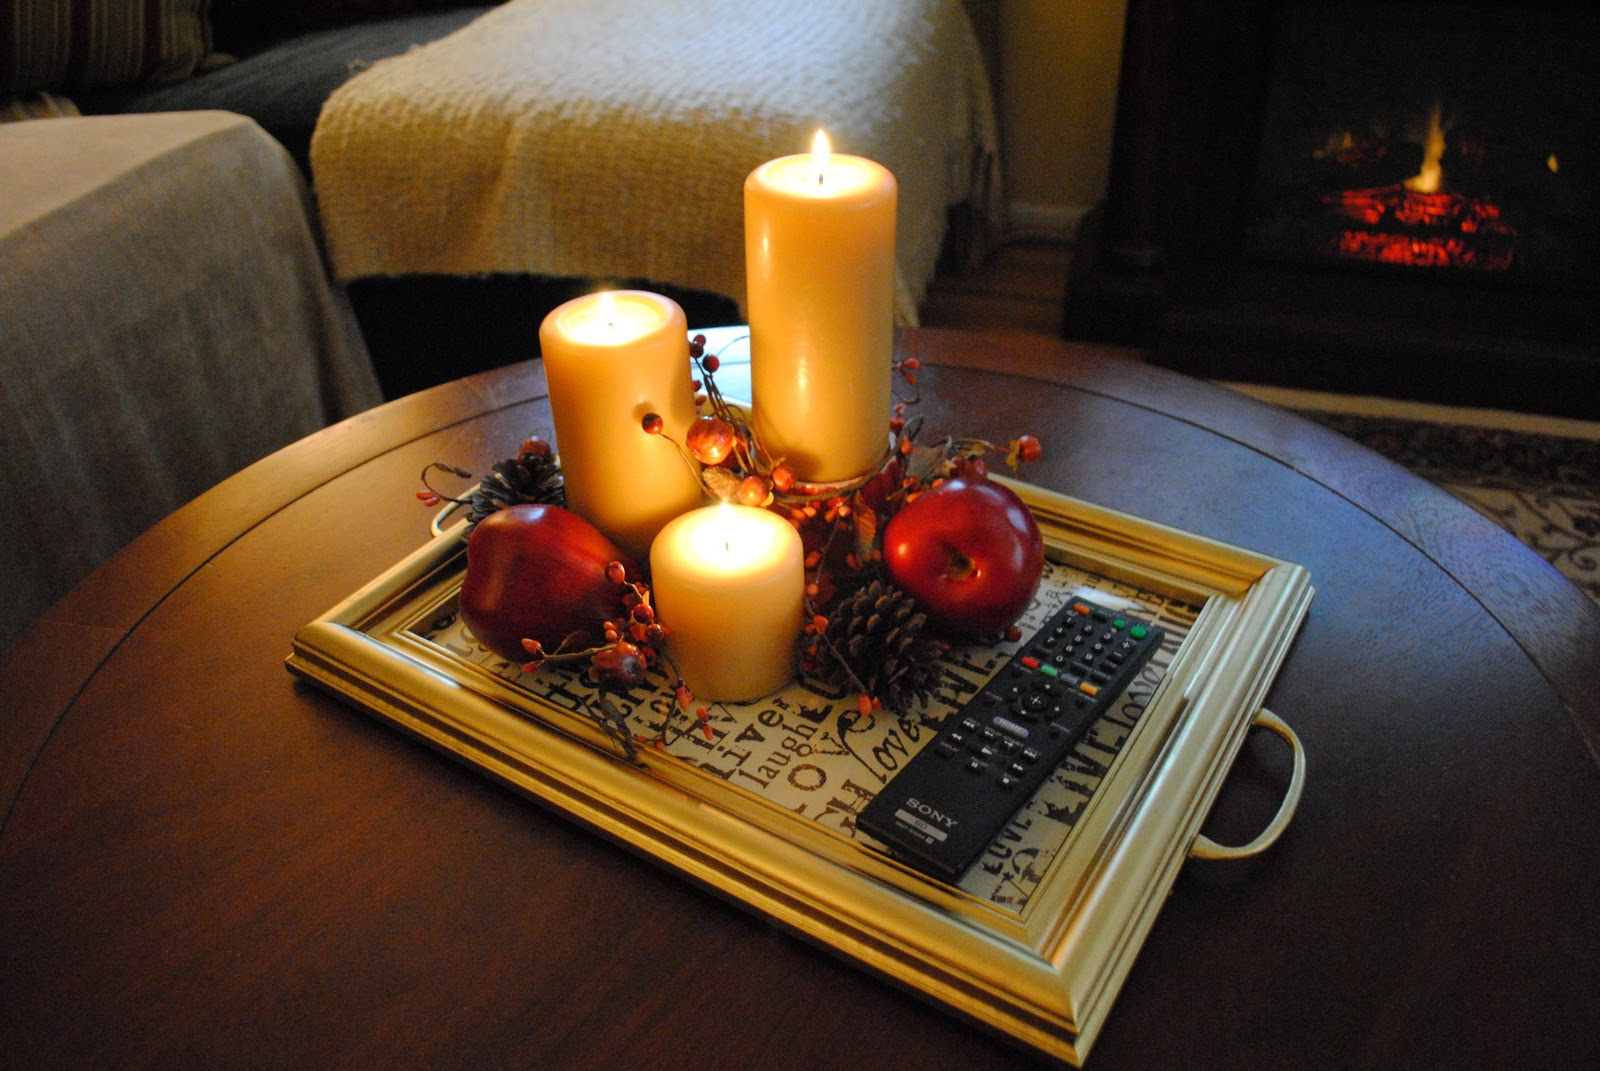 Fall winter coffee table tray display decor pinterest coffee table tray table tray and Decorative trays for coffee table